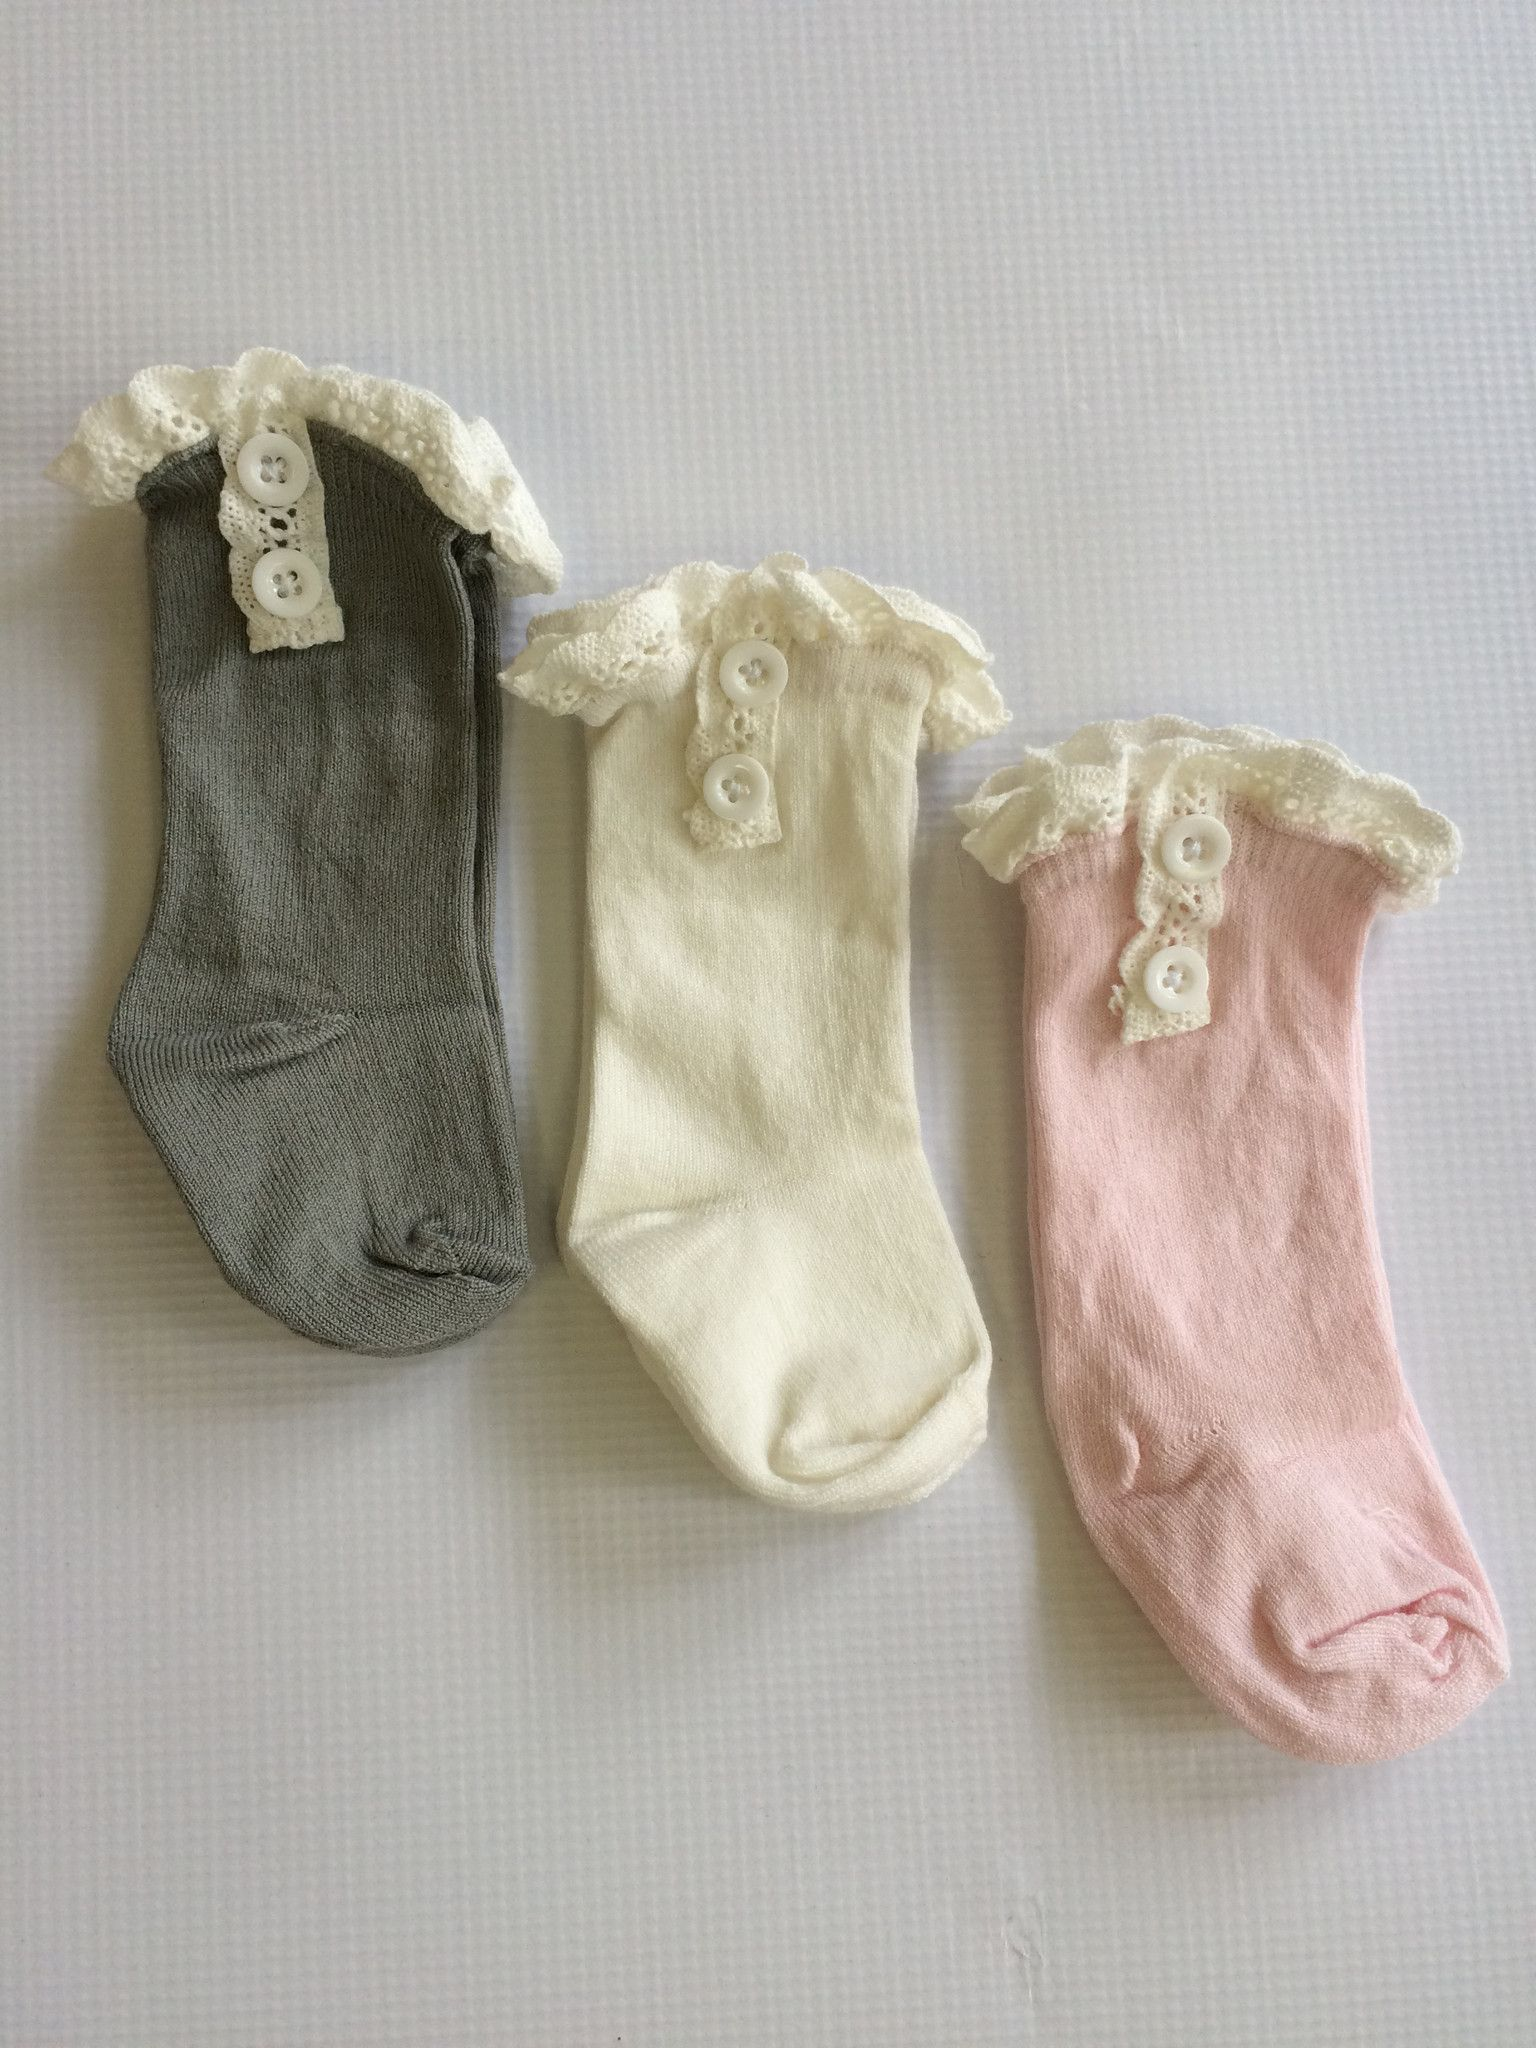 Baby Boot Socks Adorable Essentials is a great place to find